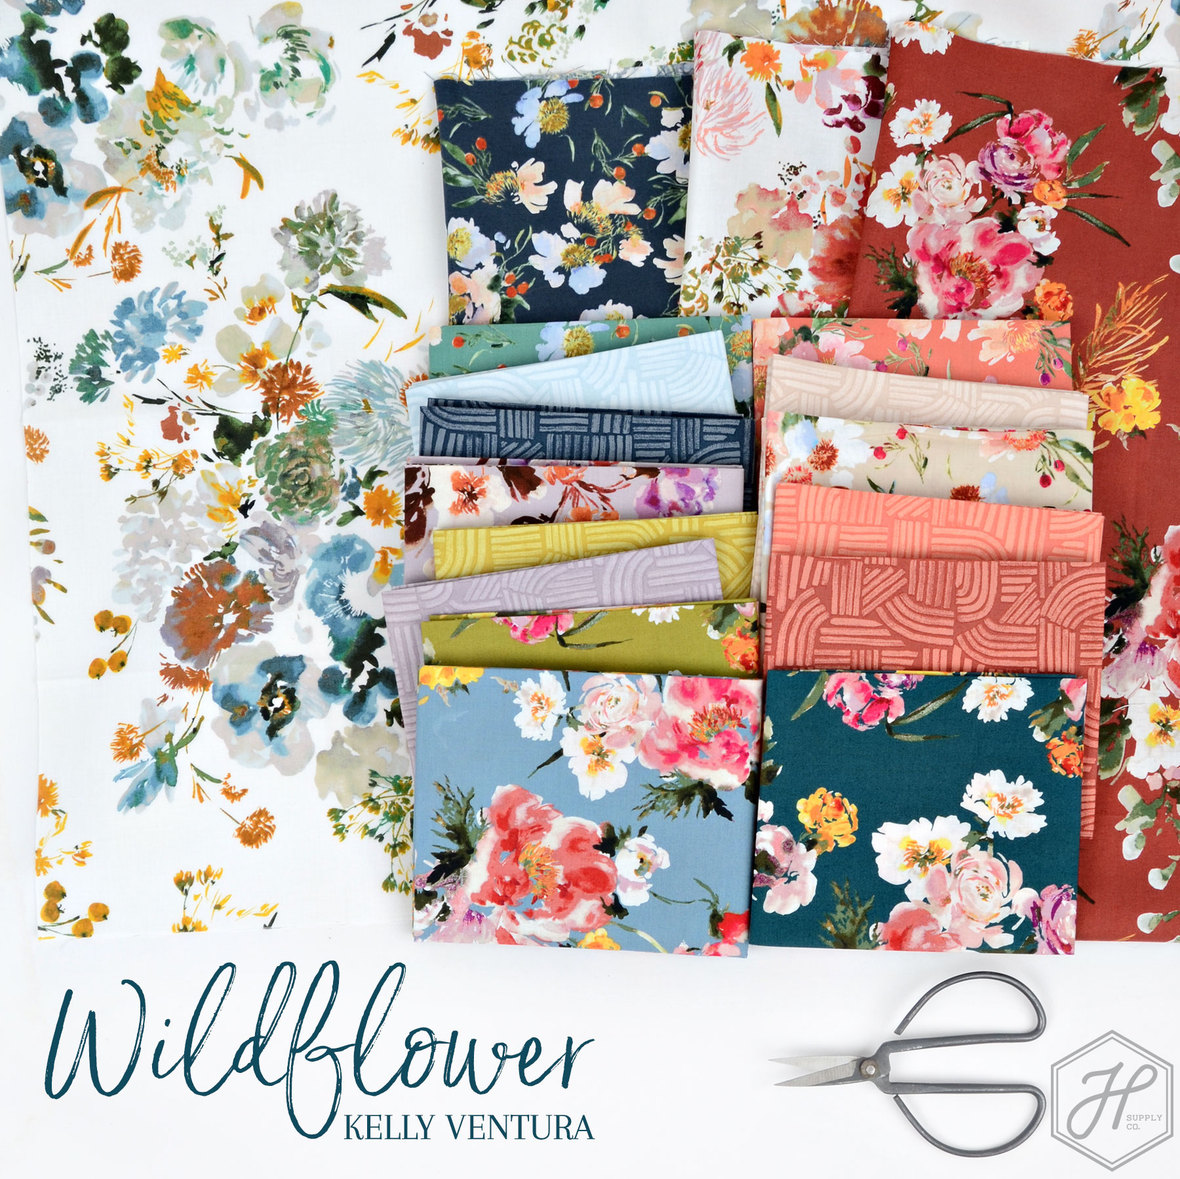 Wildflower-Kelly-Ventura-fabric-for-Windham-at-Hawthorne-Supply-Co